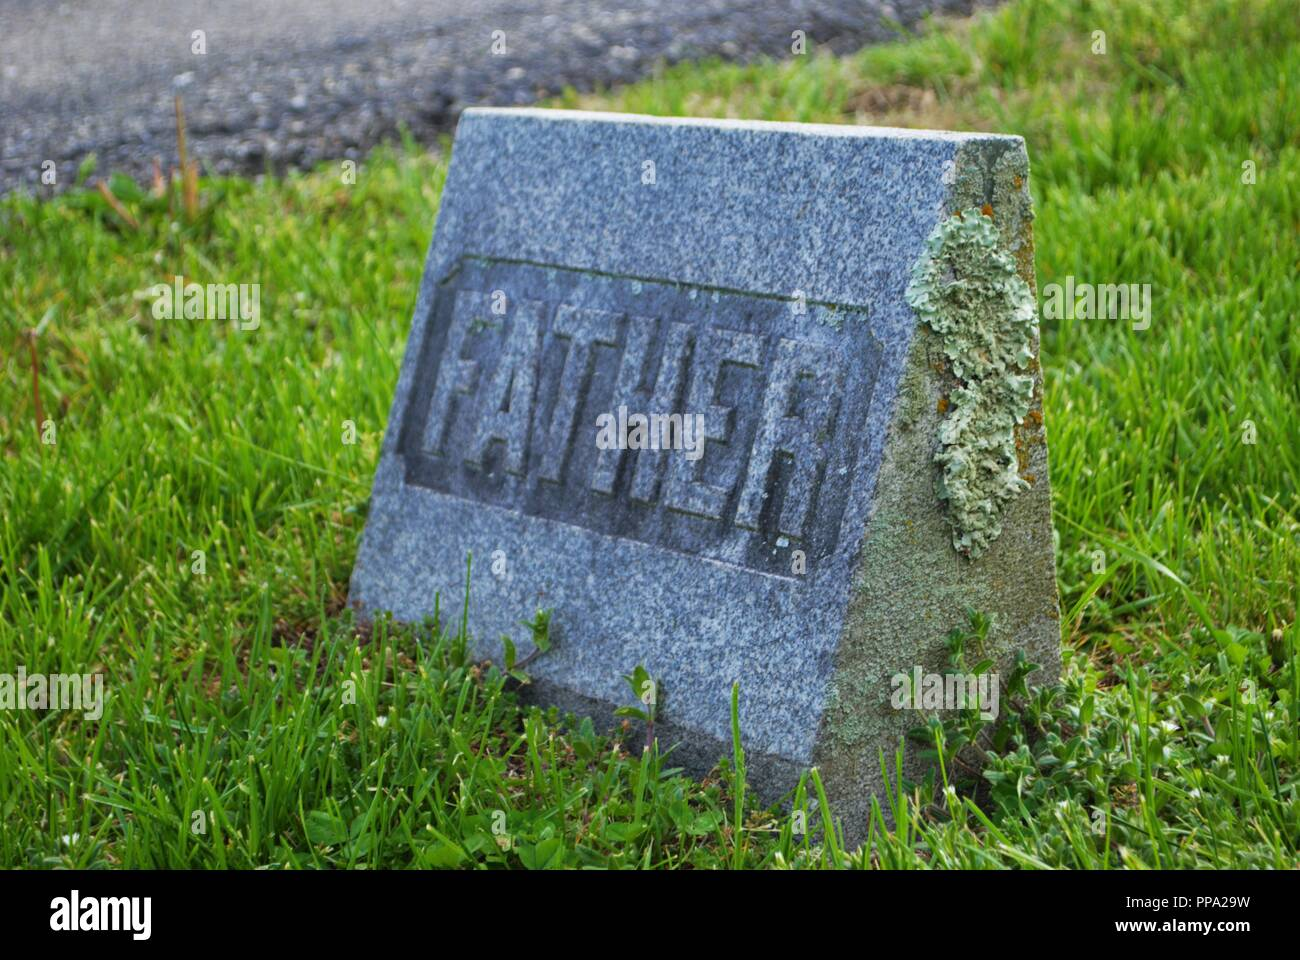 Old Grave Headstone Stone Cemetery Stock Photos Amp Old